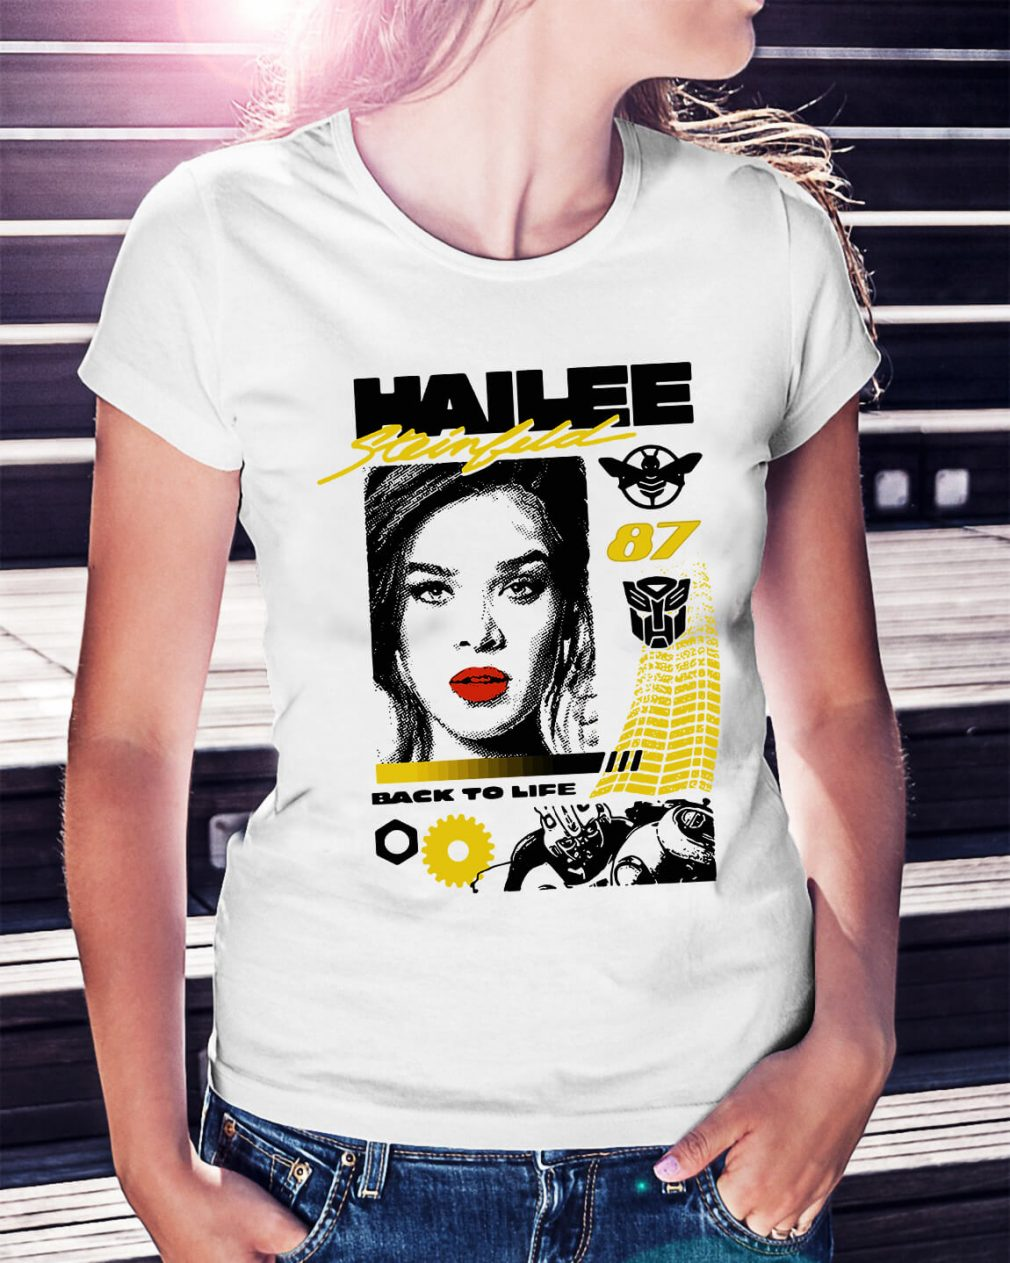 Hailee Steinfeld 87 back to life Ladies Tee